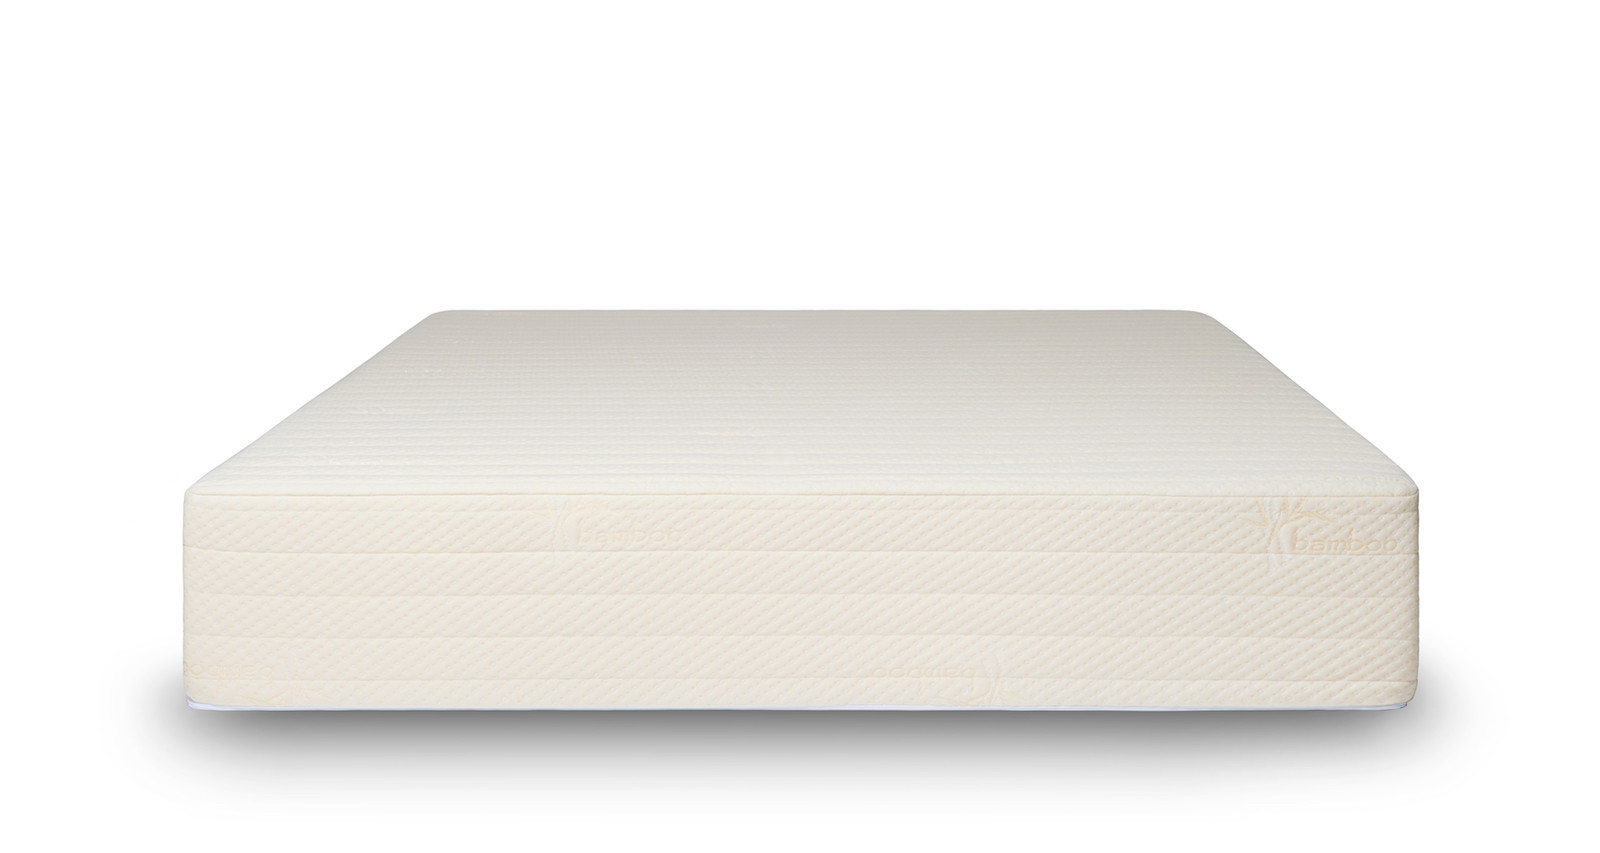 Brentwood Home Bamboo Gel 10 Mattress Review, brentwood home mattress reviews